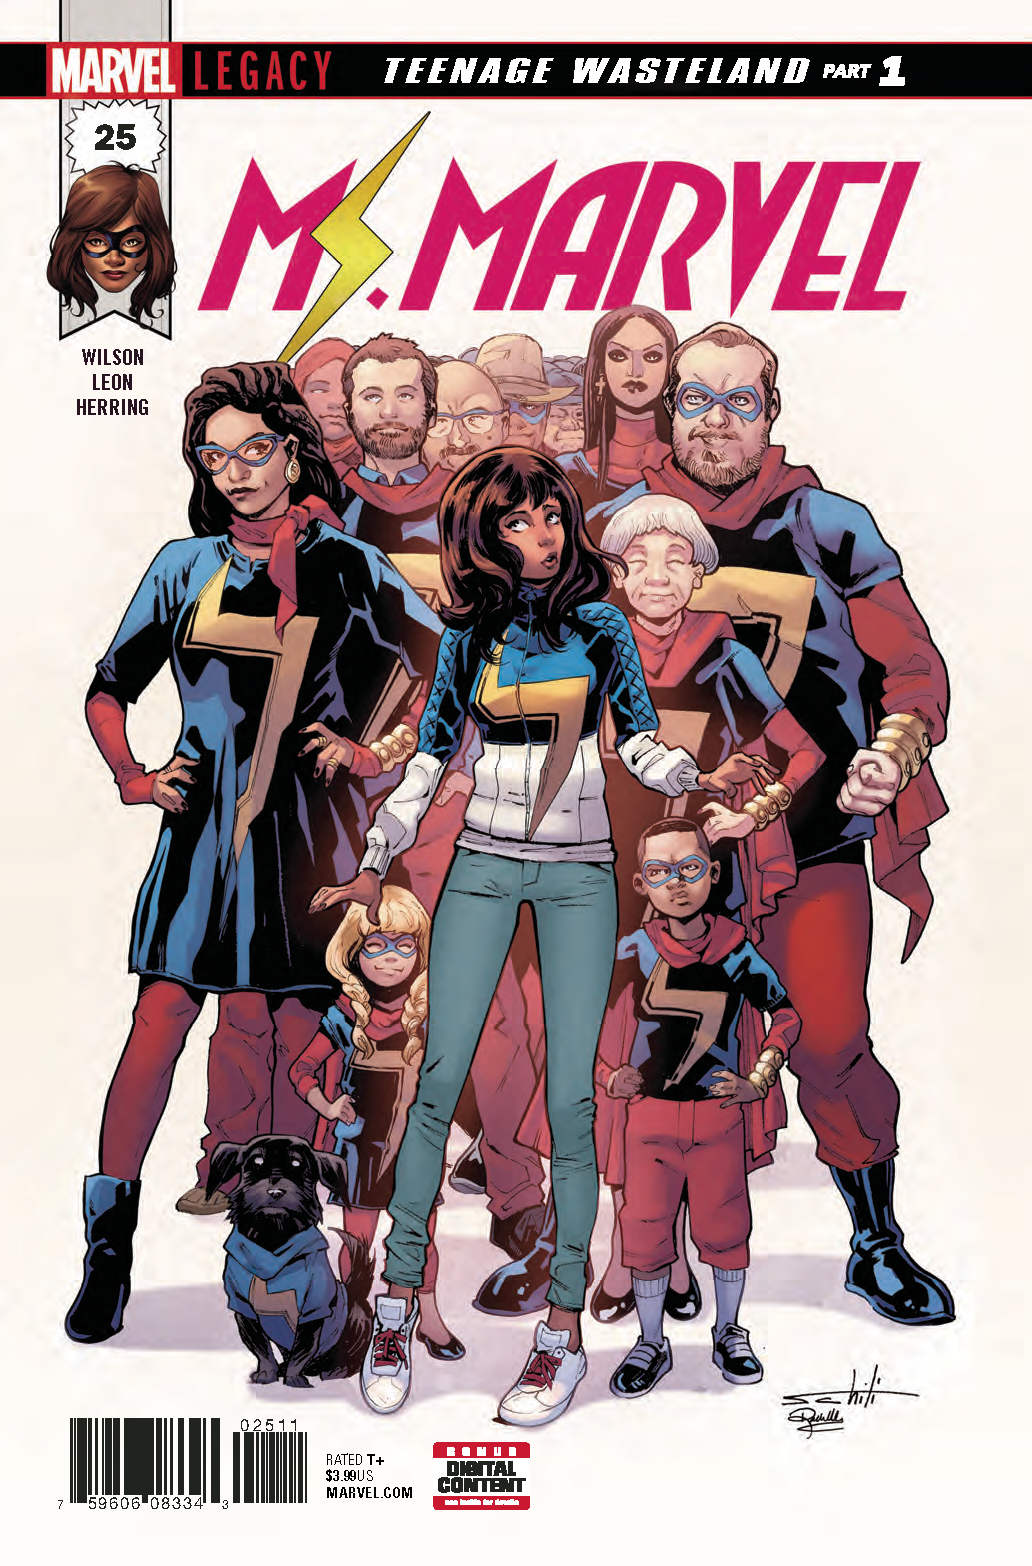 MS MARVEL #25 LEG